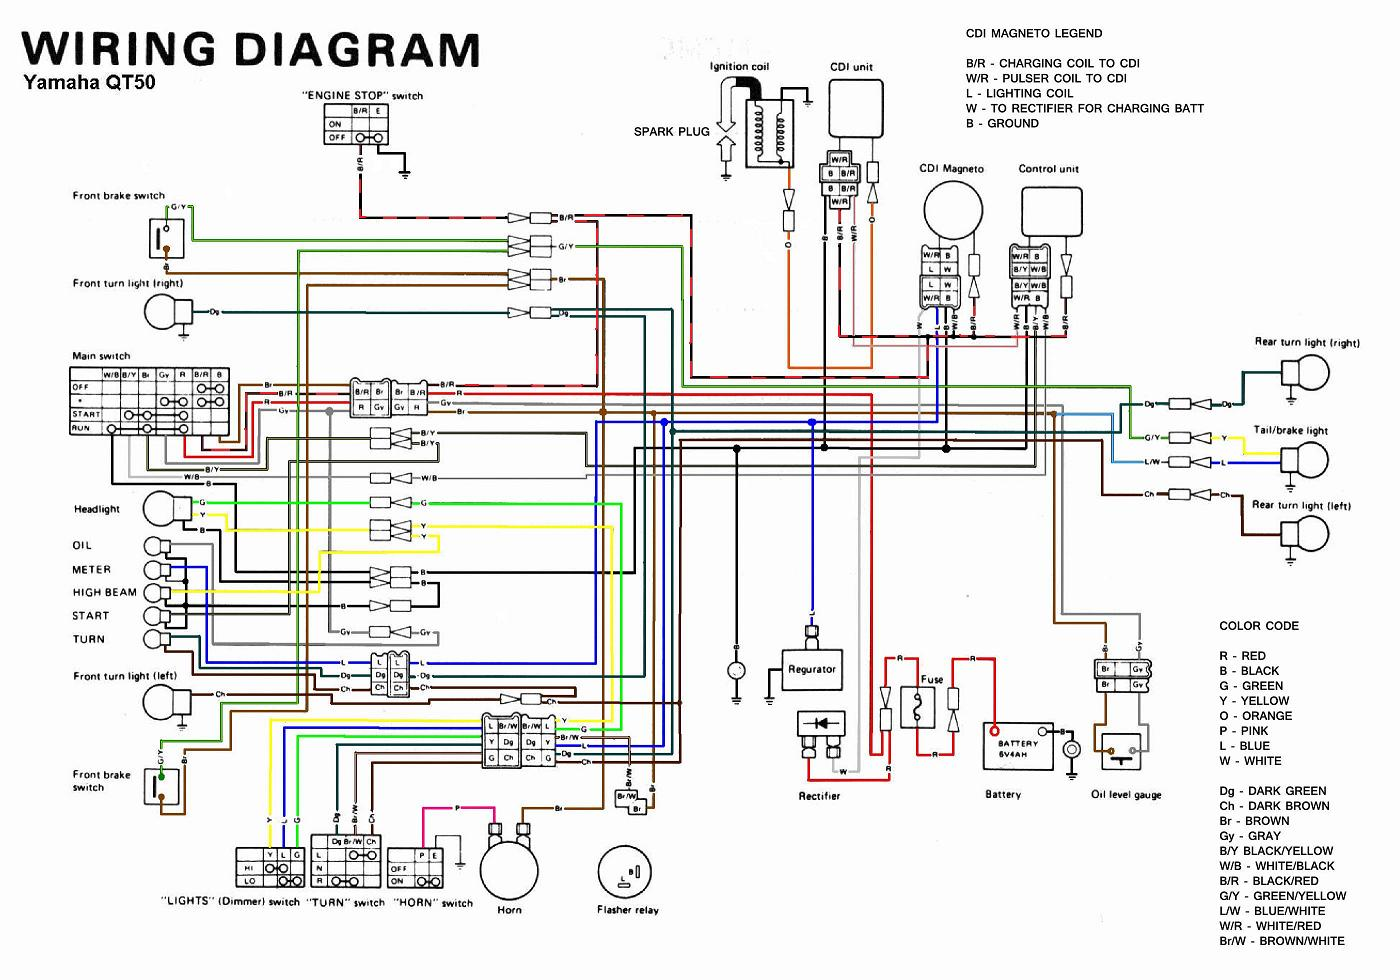 S2000 Wiring Diagram Yamaha Data Schema Harness Cdi Honda 24 Images Golf Cart Outboard